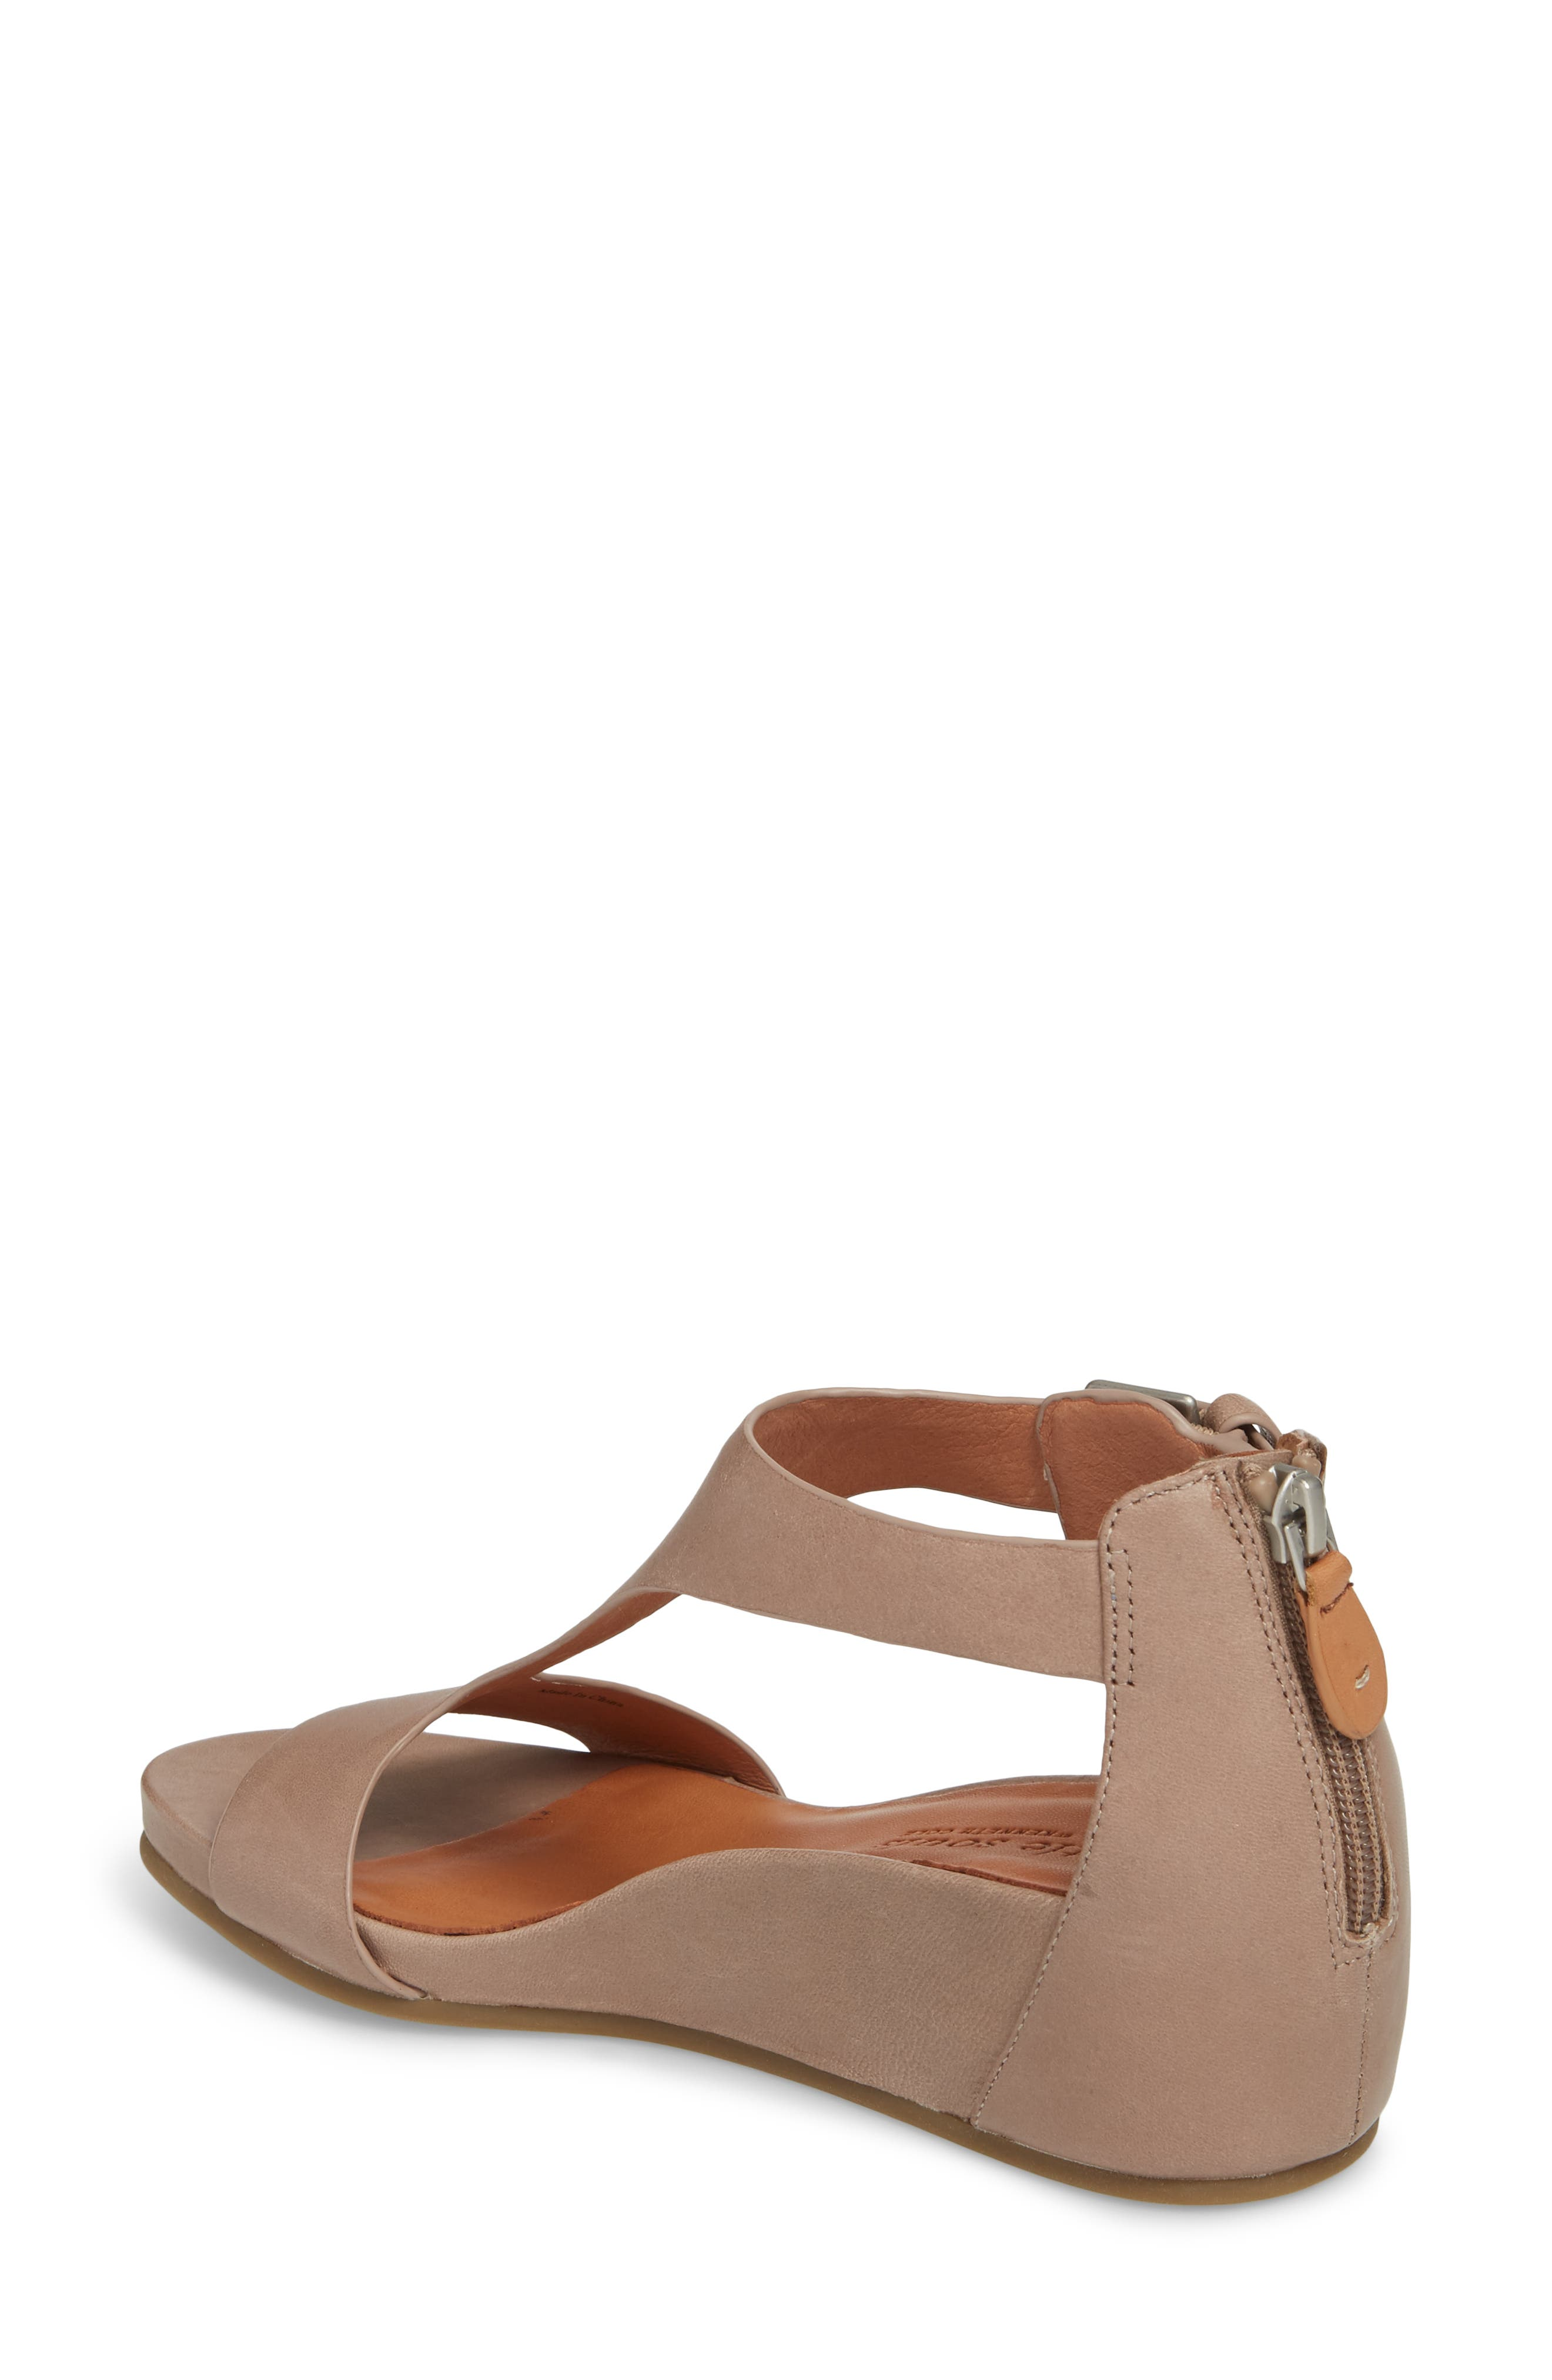 GENTLE SOULS BY KENNETH COLE, Gisele Wedge Sandal, Alternate thumbnail 2, color, PUTTY LEATHER